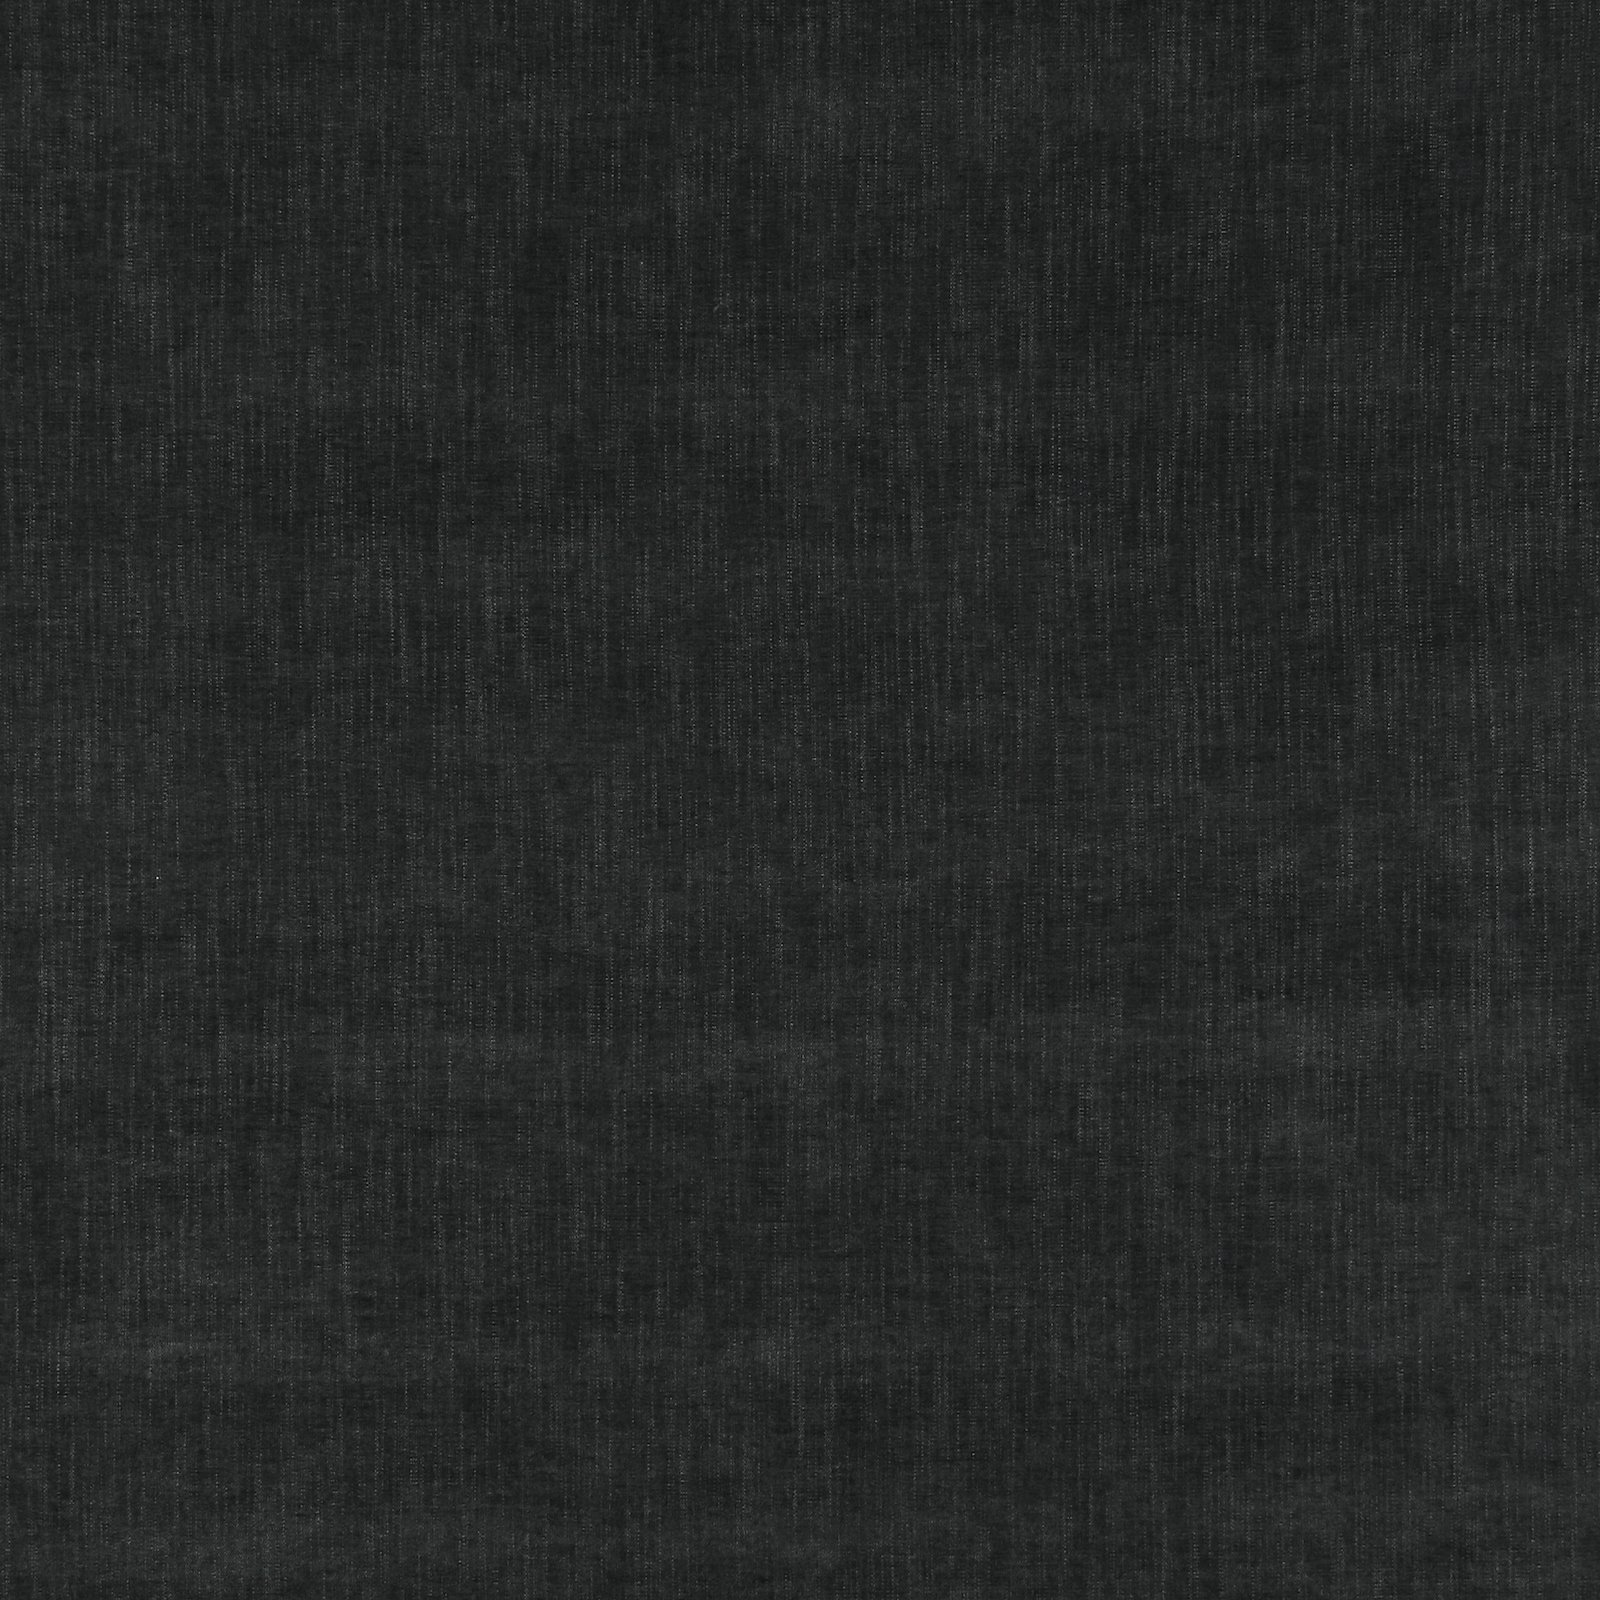 Upholstery chenille structure dark grey 824173_pack_solid